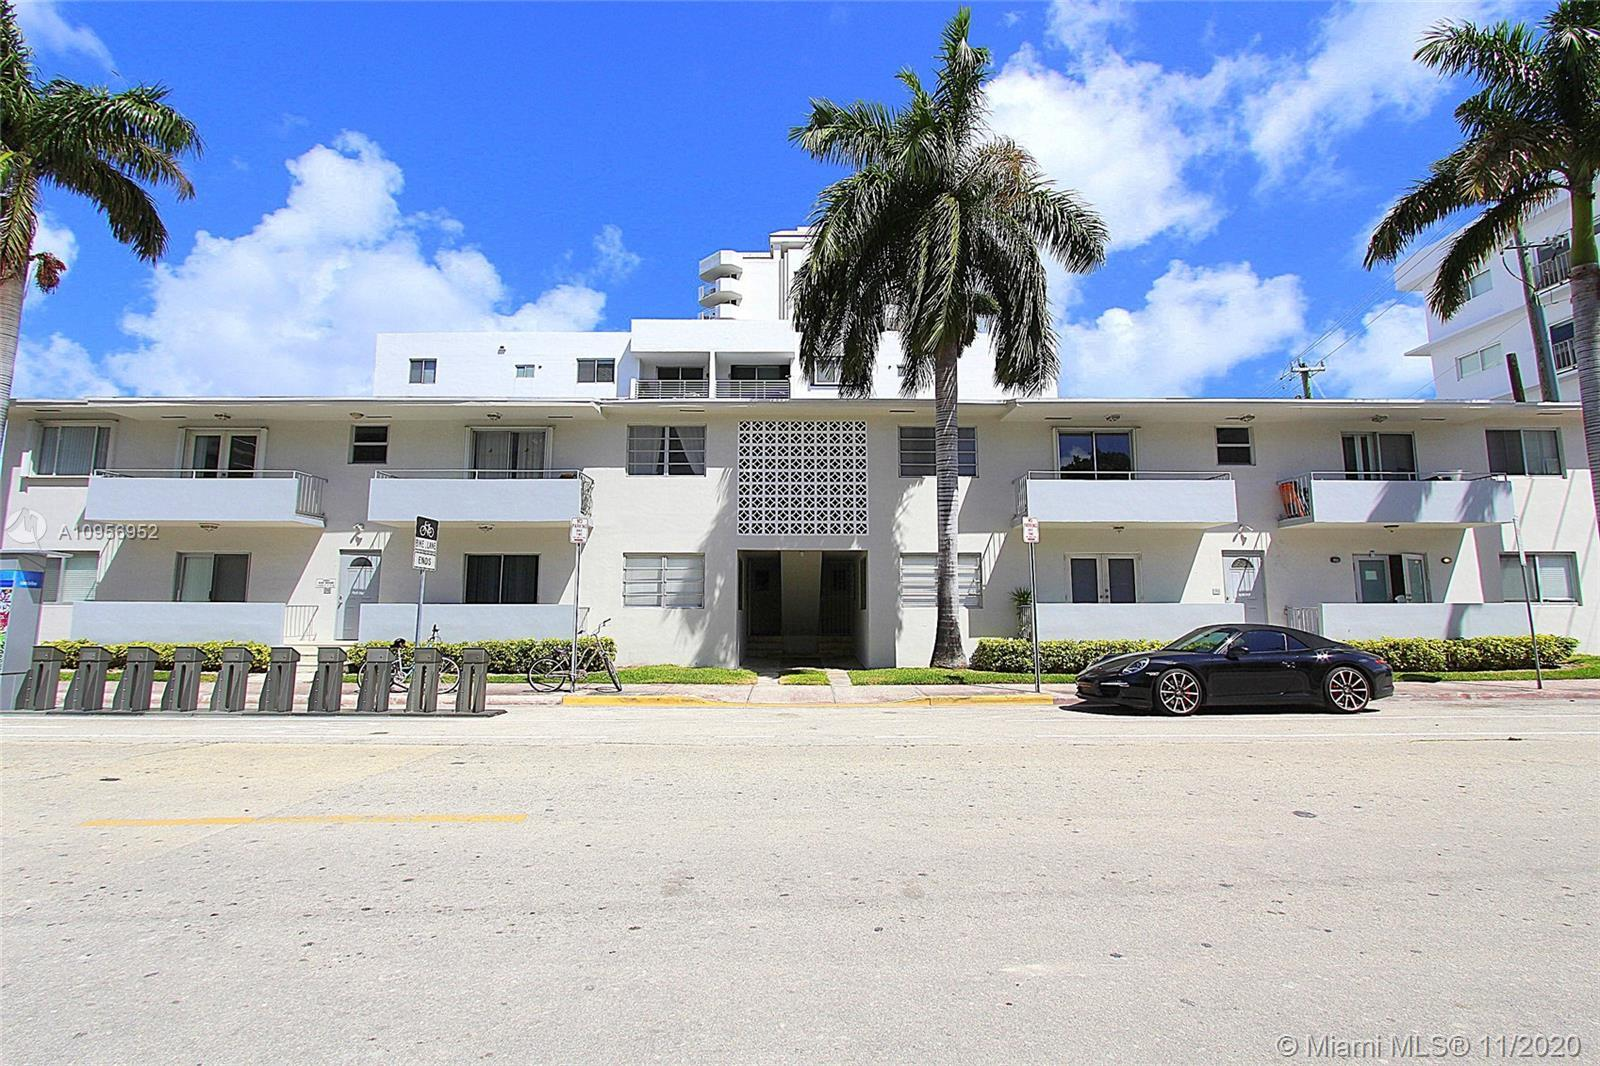 Located within walking distance to famous Lincoln Road, Ocean Drive and the beach. Small boutique bu